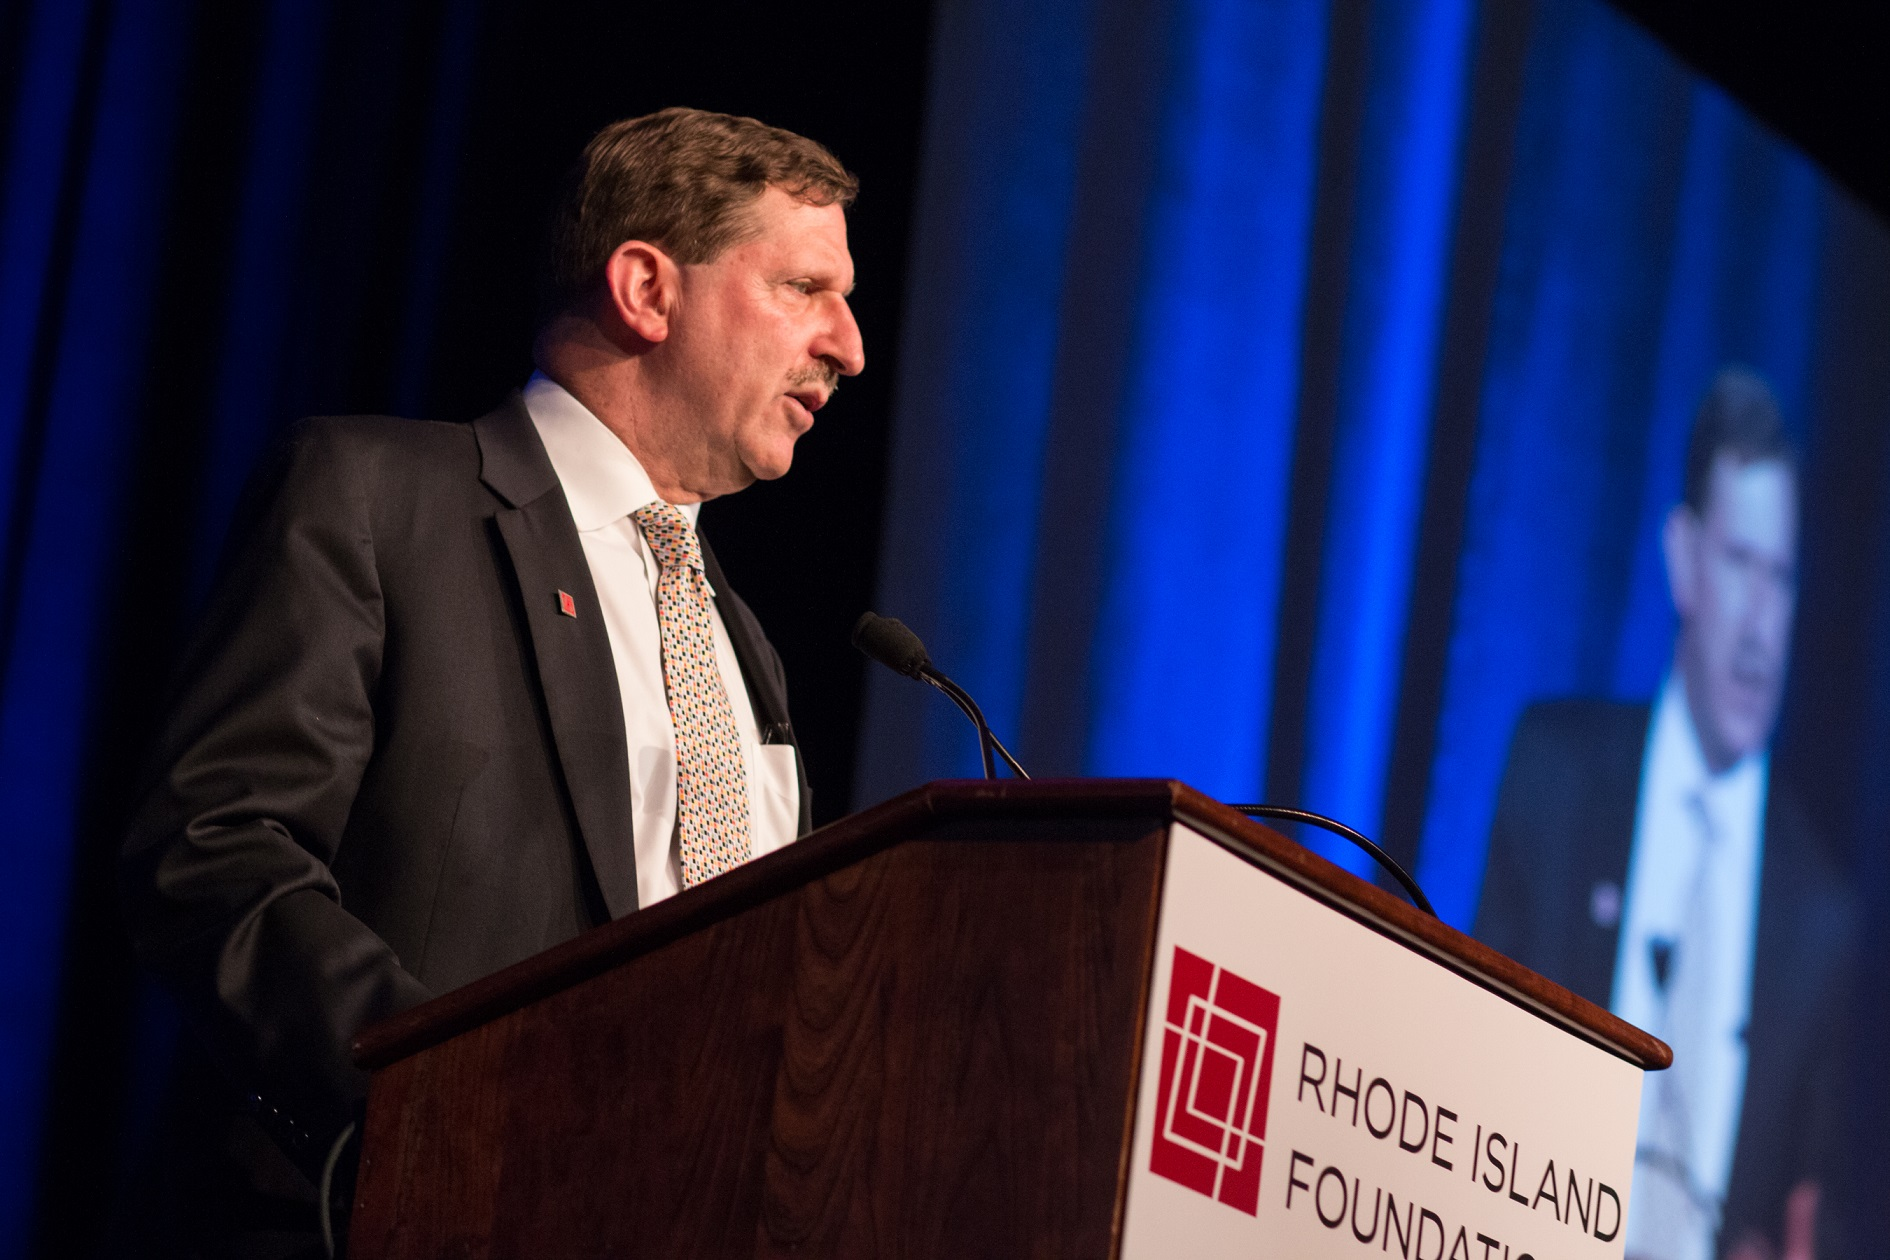 NEIL D. STEINBERG speaks at the Rhode Island Foundation's annual meeting in 2015./ COURTESY OF RHODE ISLAND FOUNDATION.